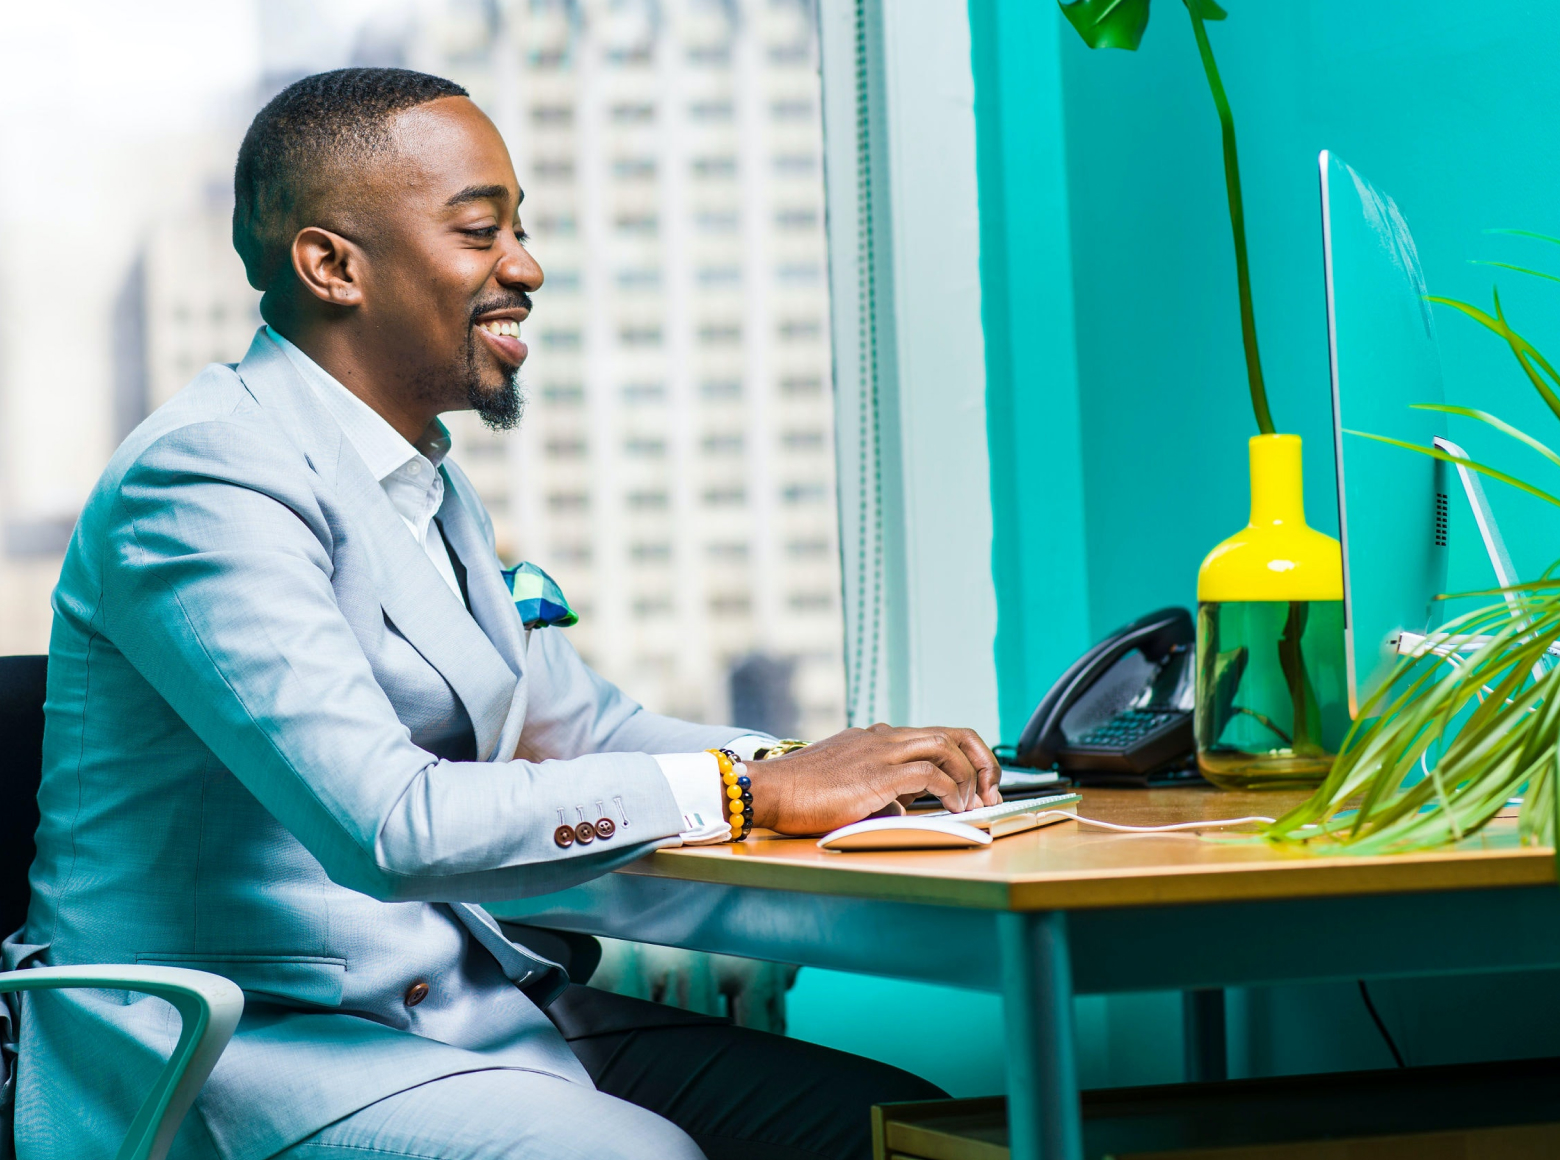 10 in-demand careers of the future you should know about